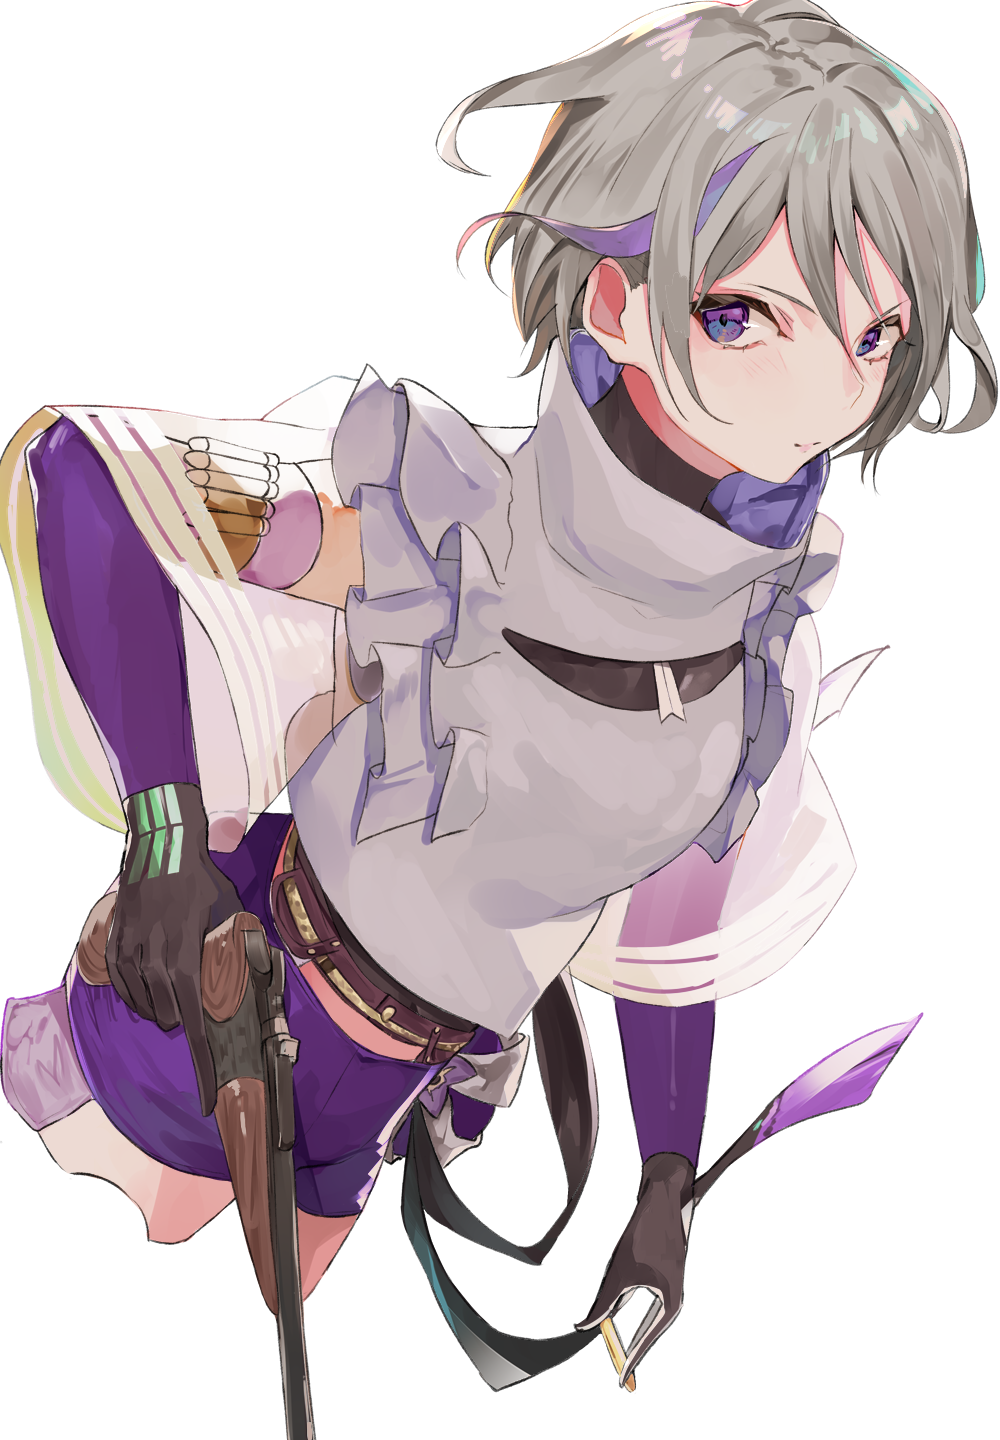 1girl asyde blush bullet closed_mouth contender_(girls_frontline) cropped_legs elbow_gloves frills girls_frontline gloves grey_hair gun handgun highres holding holding_bullet holding_gun holding_weapon lips multicolored multicolored_clothes multicolored_gloves multicolored_hair purple_hair purple_shorts short_hair shorts simple_background solo streaked_hair thompson/center_contender violet_eyes weapon white_background